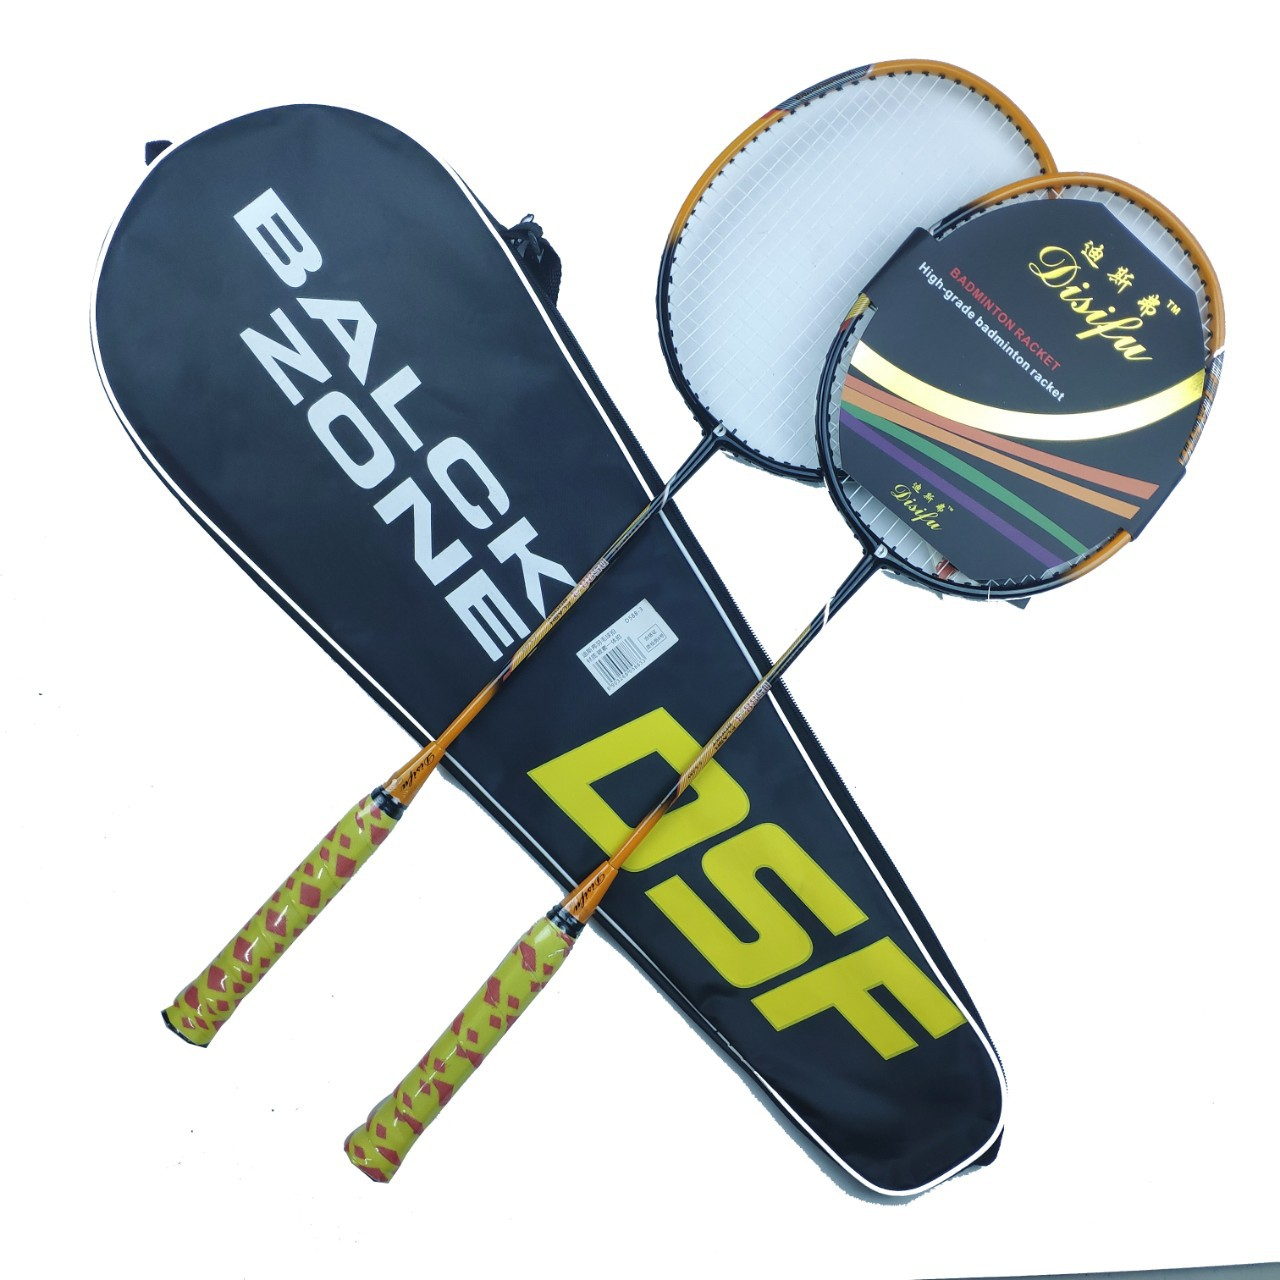 Tomohiro Sports Aluminum Carbon One-piece Badminton Racket Two Loaded Training Game With Beat